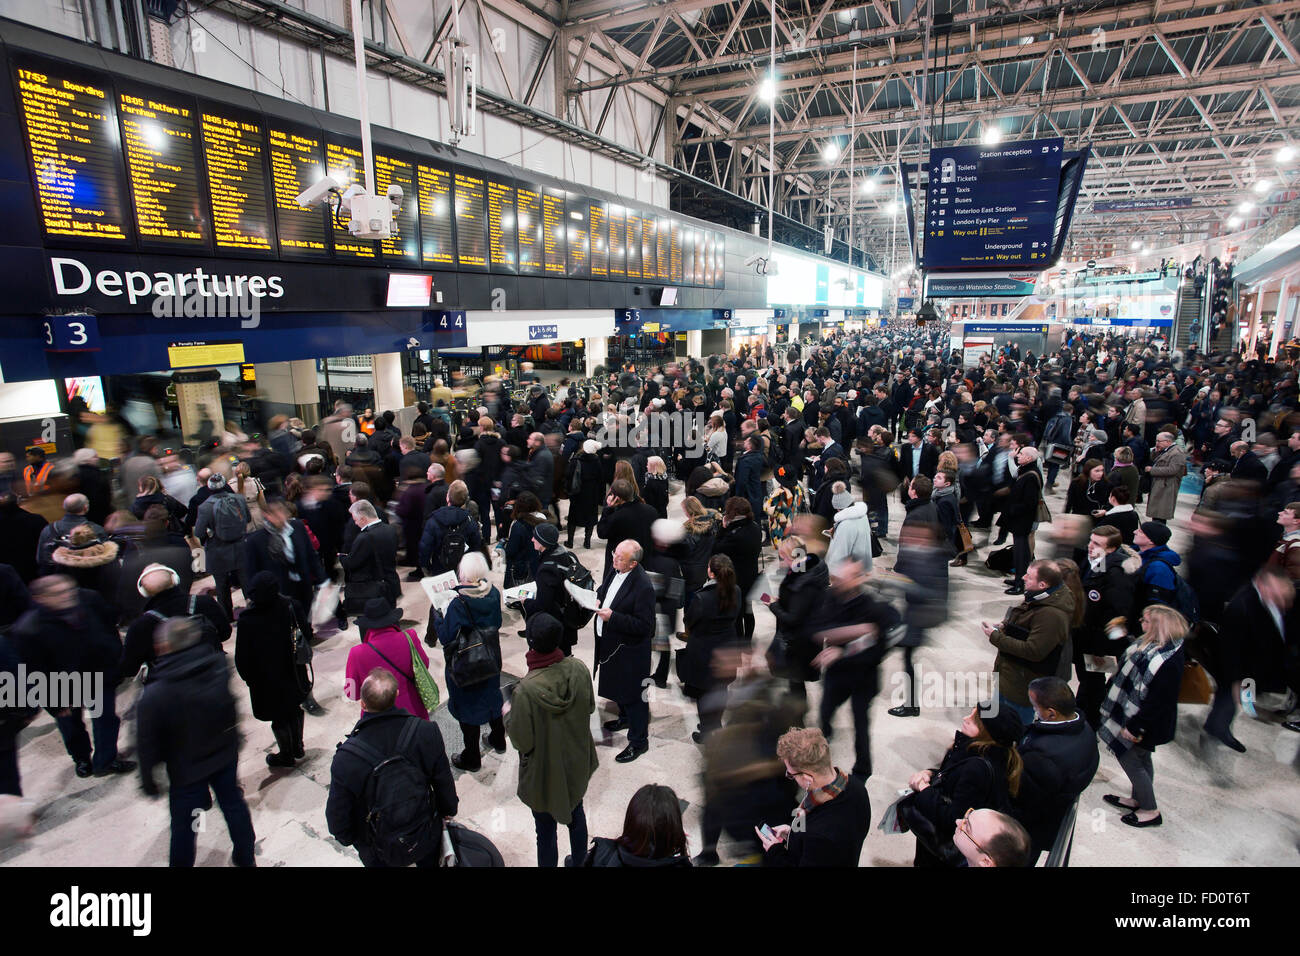 London, UK - January 20, 2016: Inside view of Waterloo Station, since 1848, central London railway terminus, busiest - Stock Image